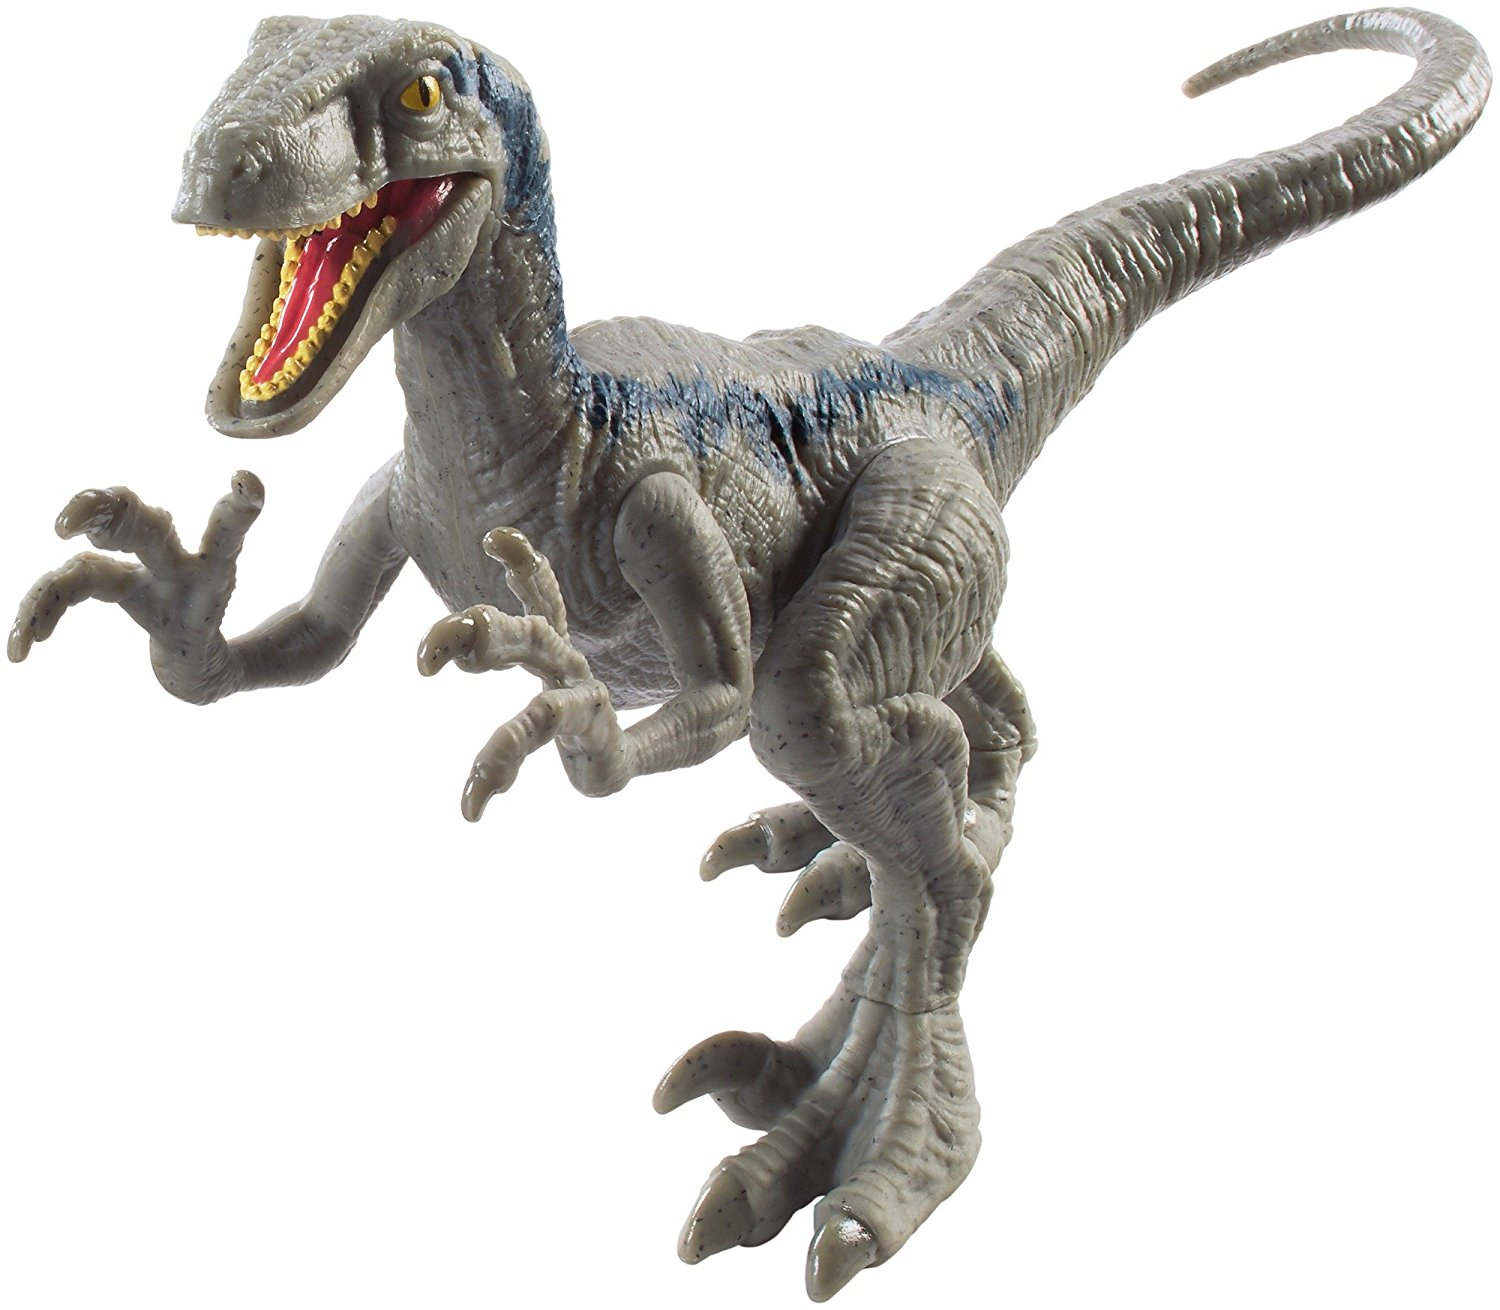 Jurassic World Toys - Pre-Orders and New Products Live - The